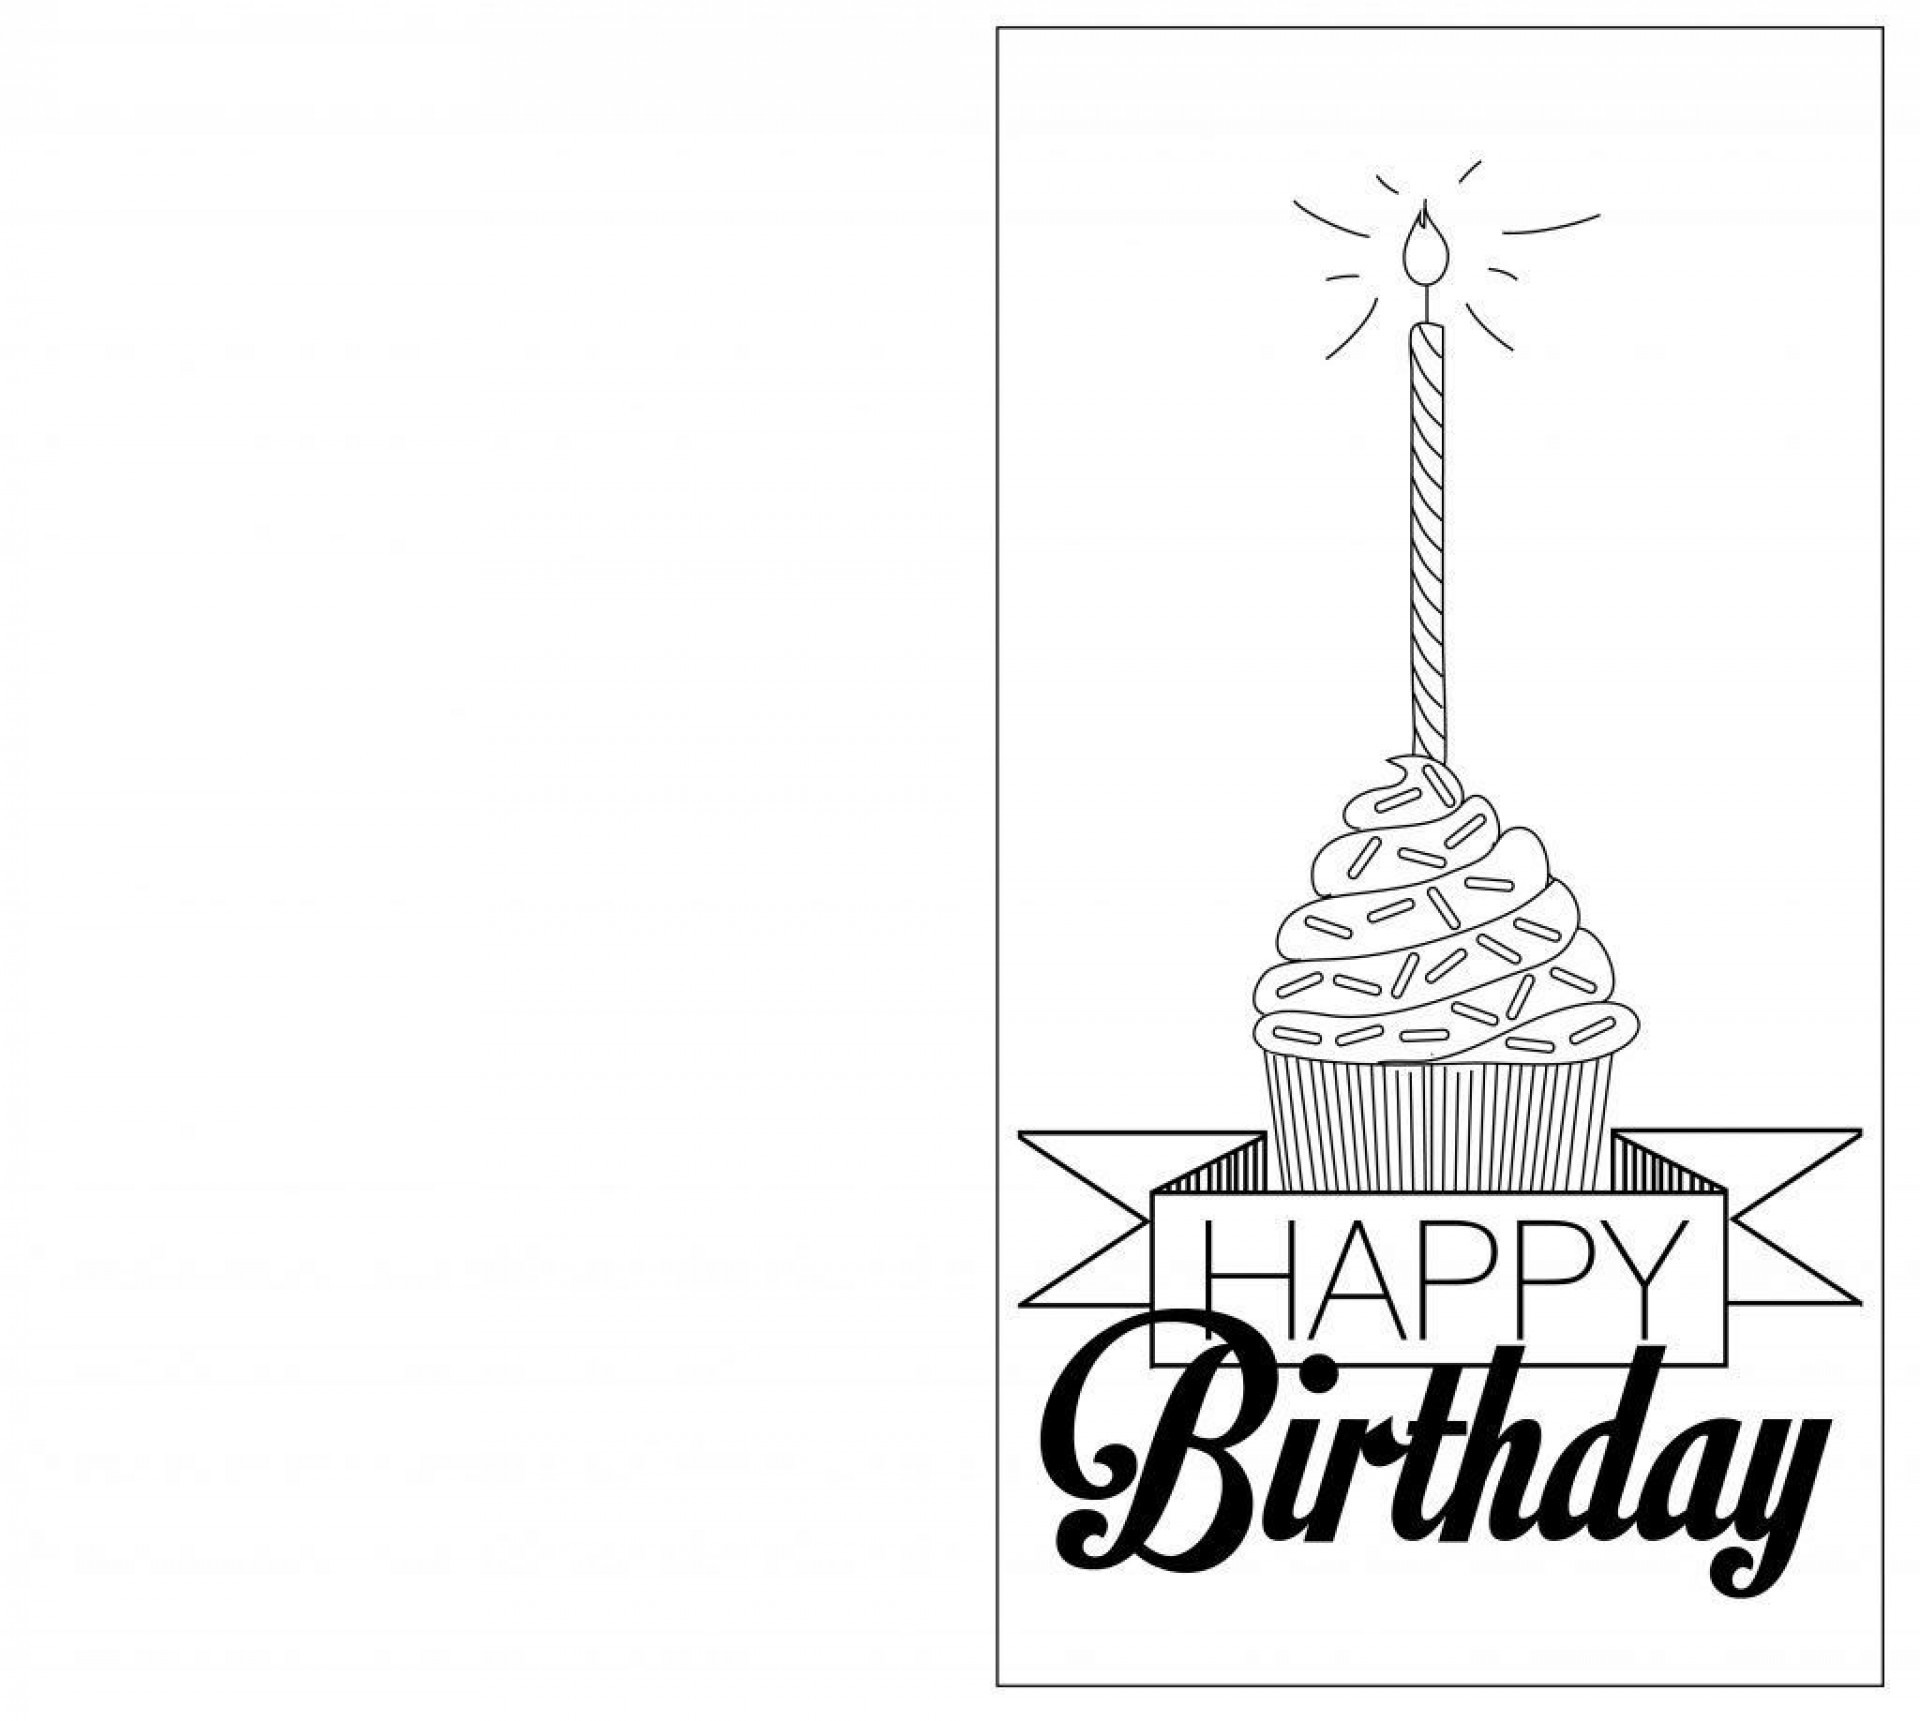 005 Unbelievable Free Printable Birthday Card Template For Mac Inspiration 1920